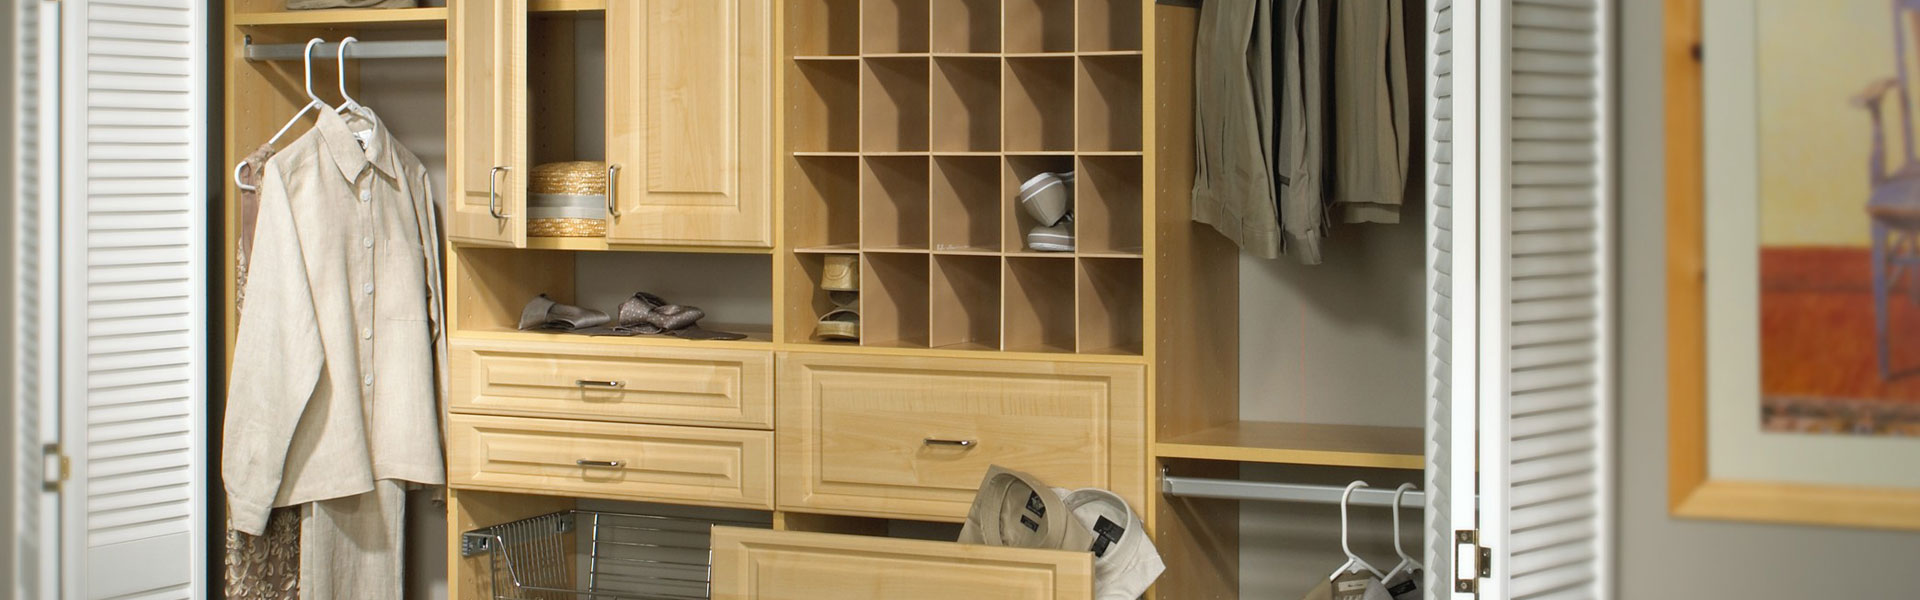 Drawers open in Maple reach-in closet design by Norton organizers